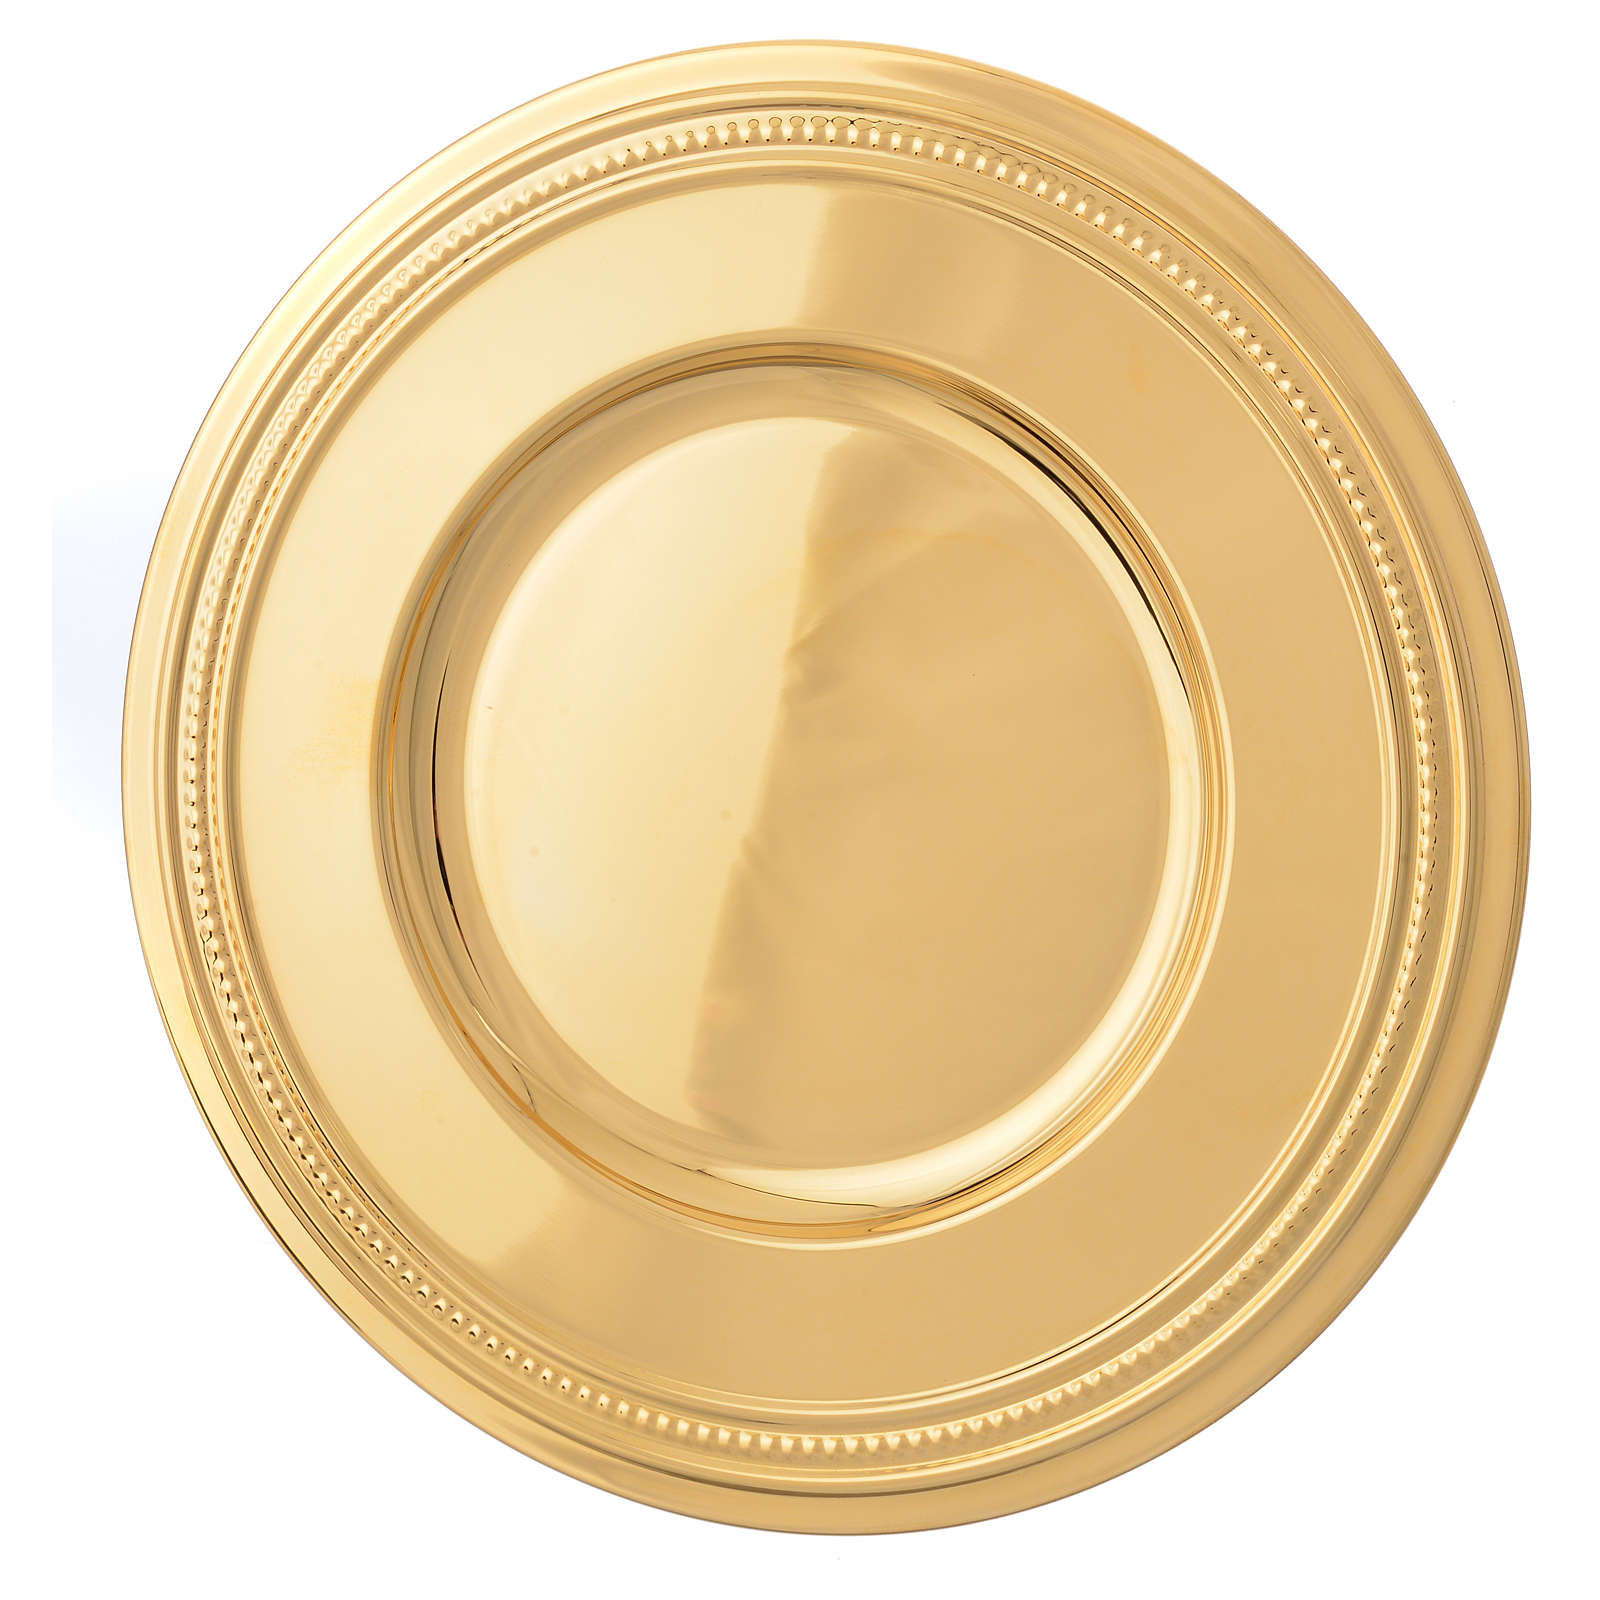 Paten in golden brass 19cm 4